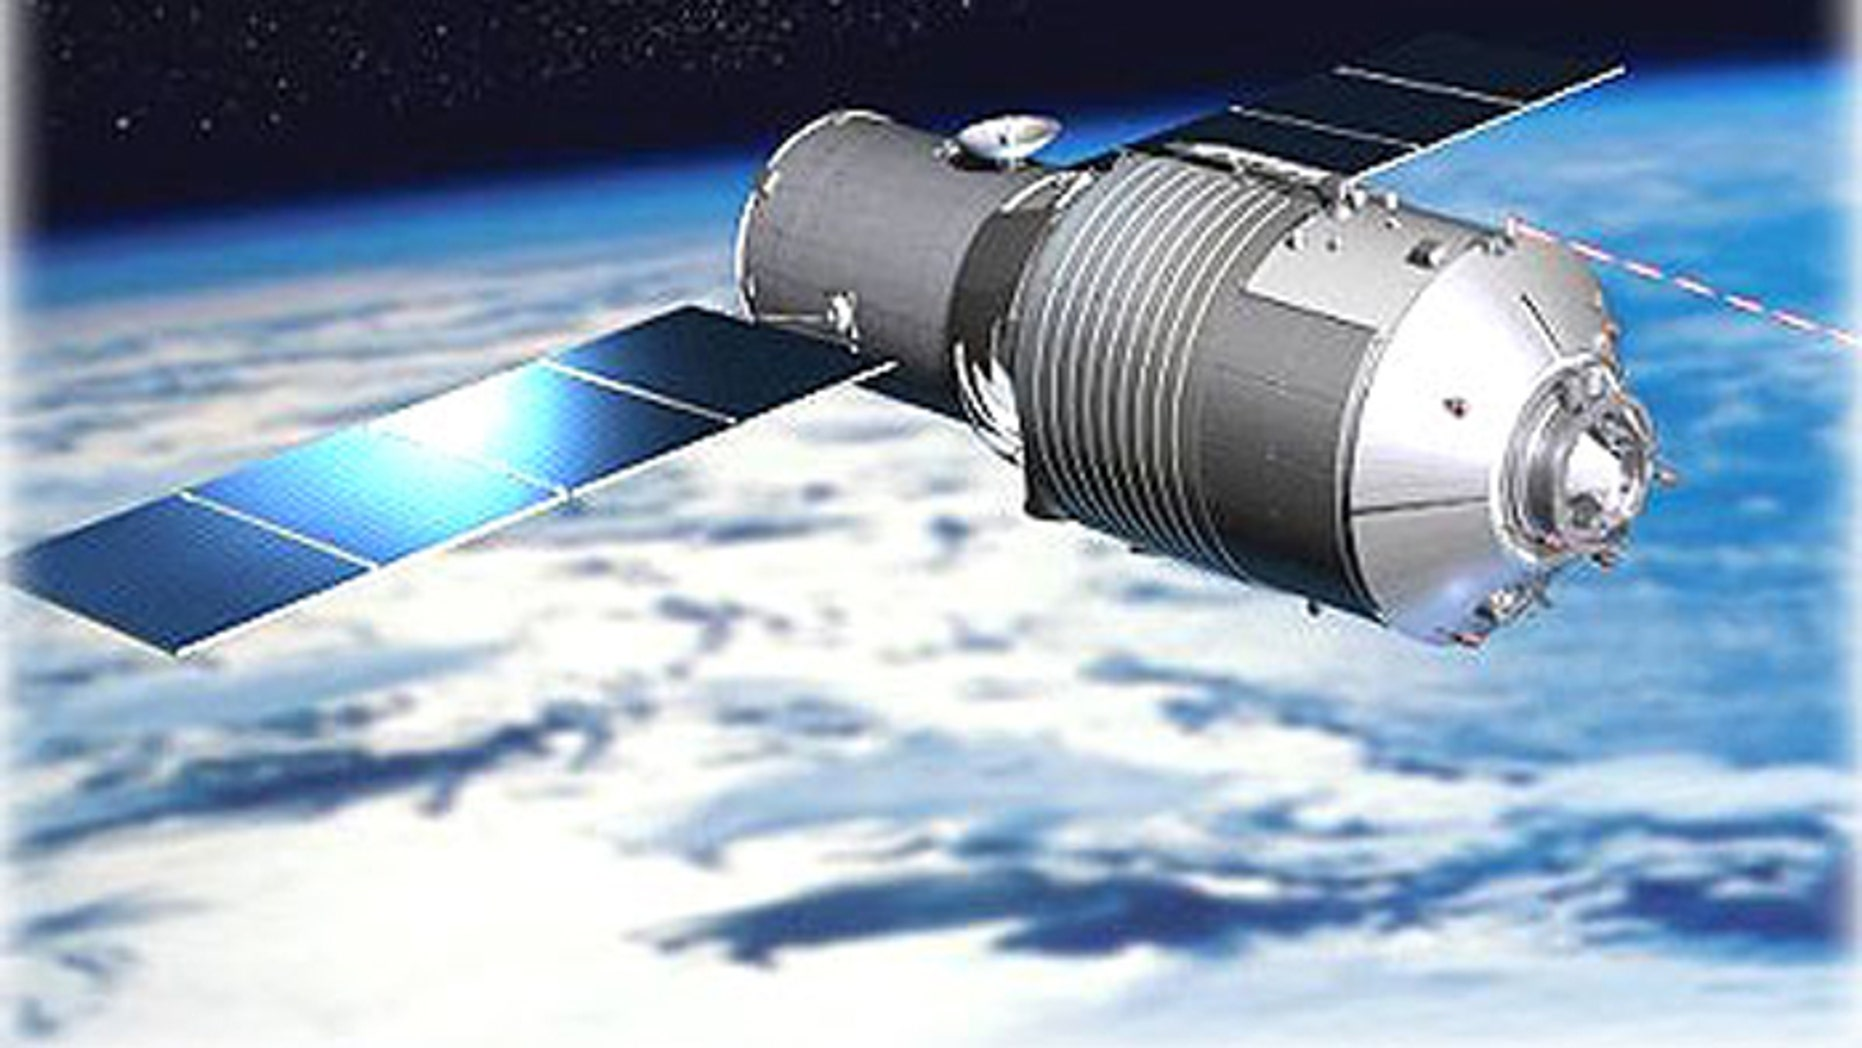 An artist's illustration of China's Tiangong-1 space lab, which is expected to fall back to Earth in early 2018.